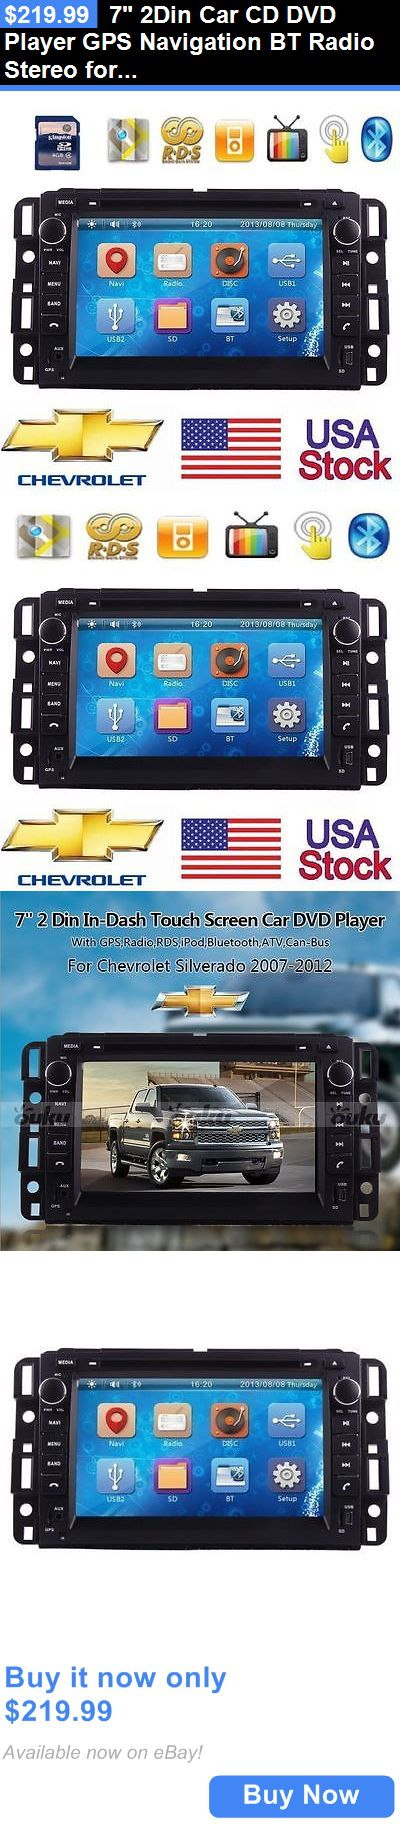 Vehicle Electronics And GPS: 7 2Din Car Cd Dvd Player Gps Navigation Bt Radio Stereo For Chevrolet Silverado BUY IT NOW ONLY: $219.99